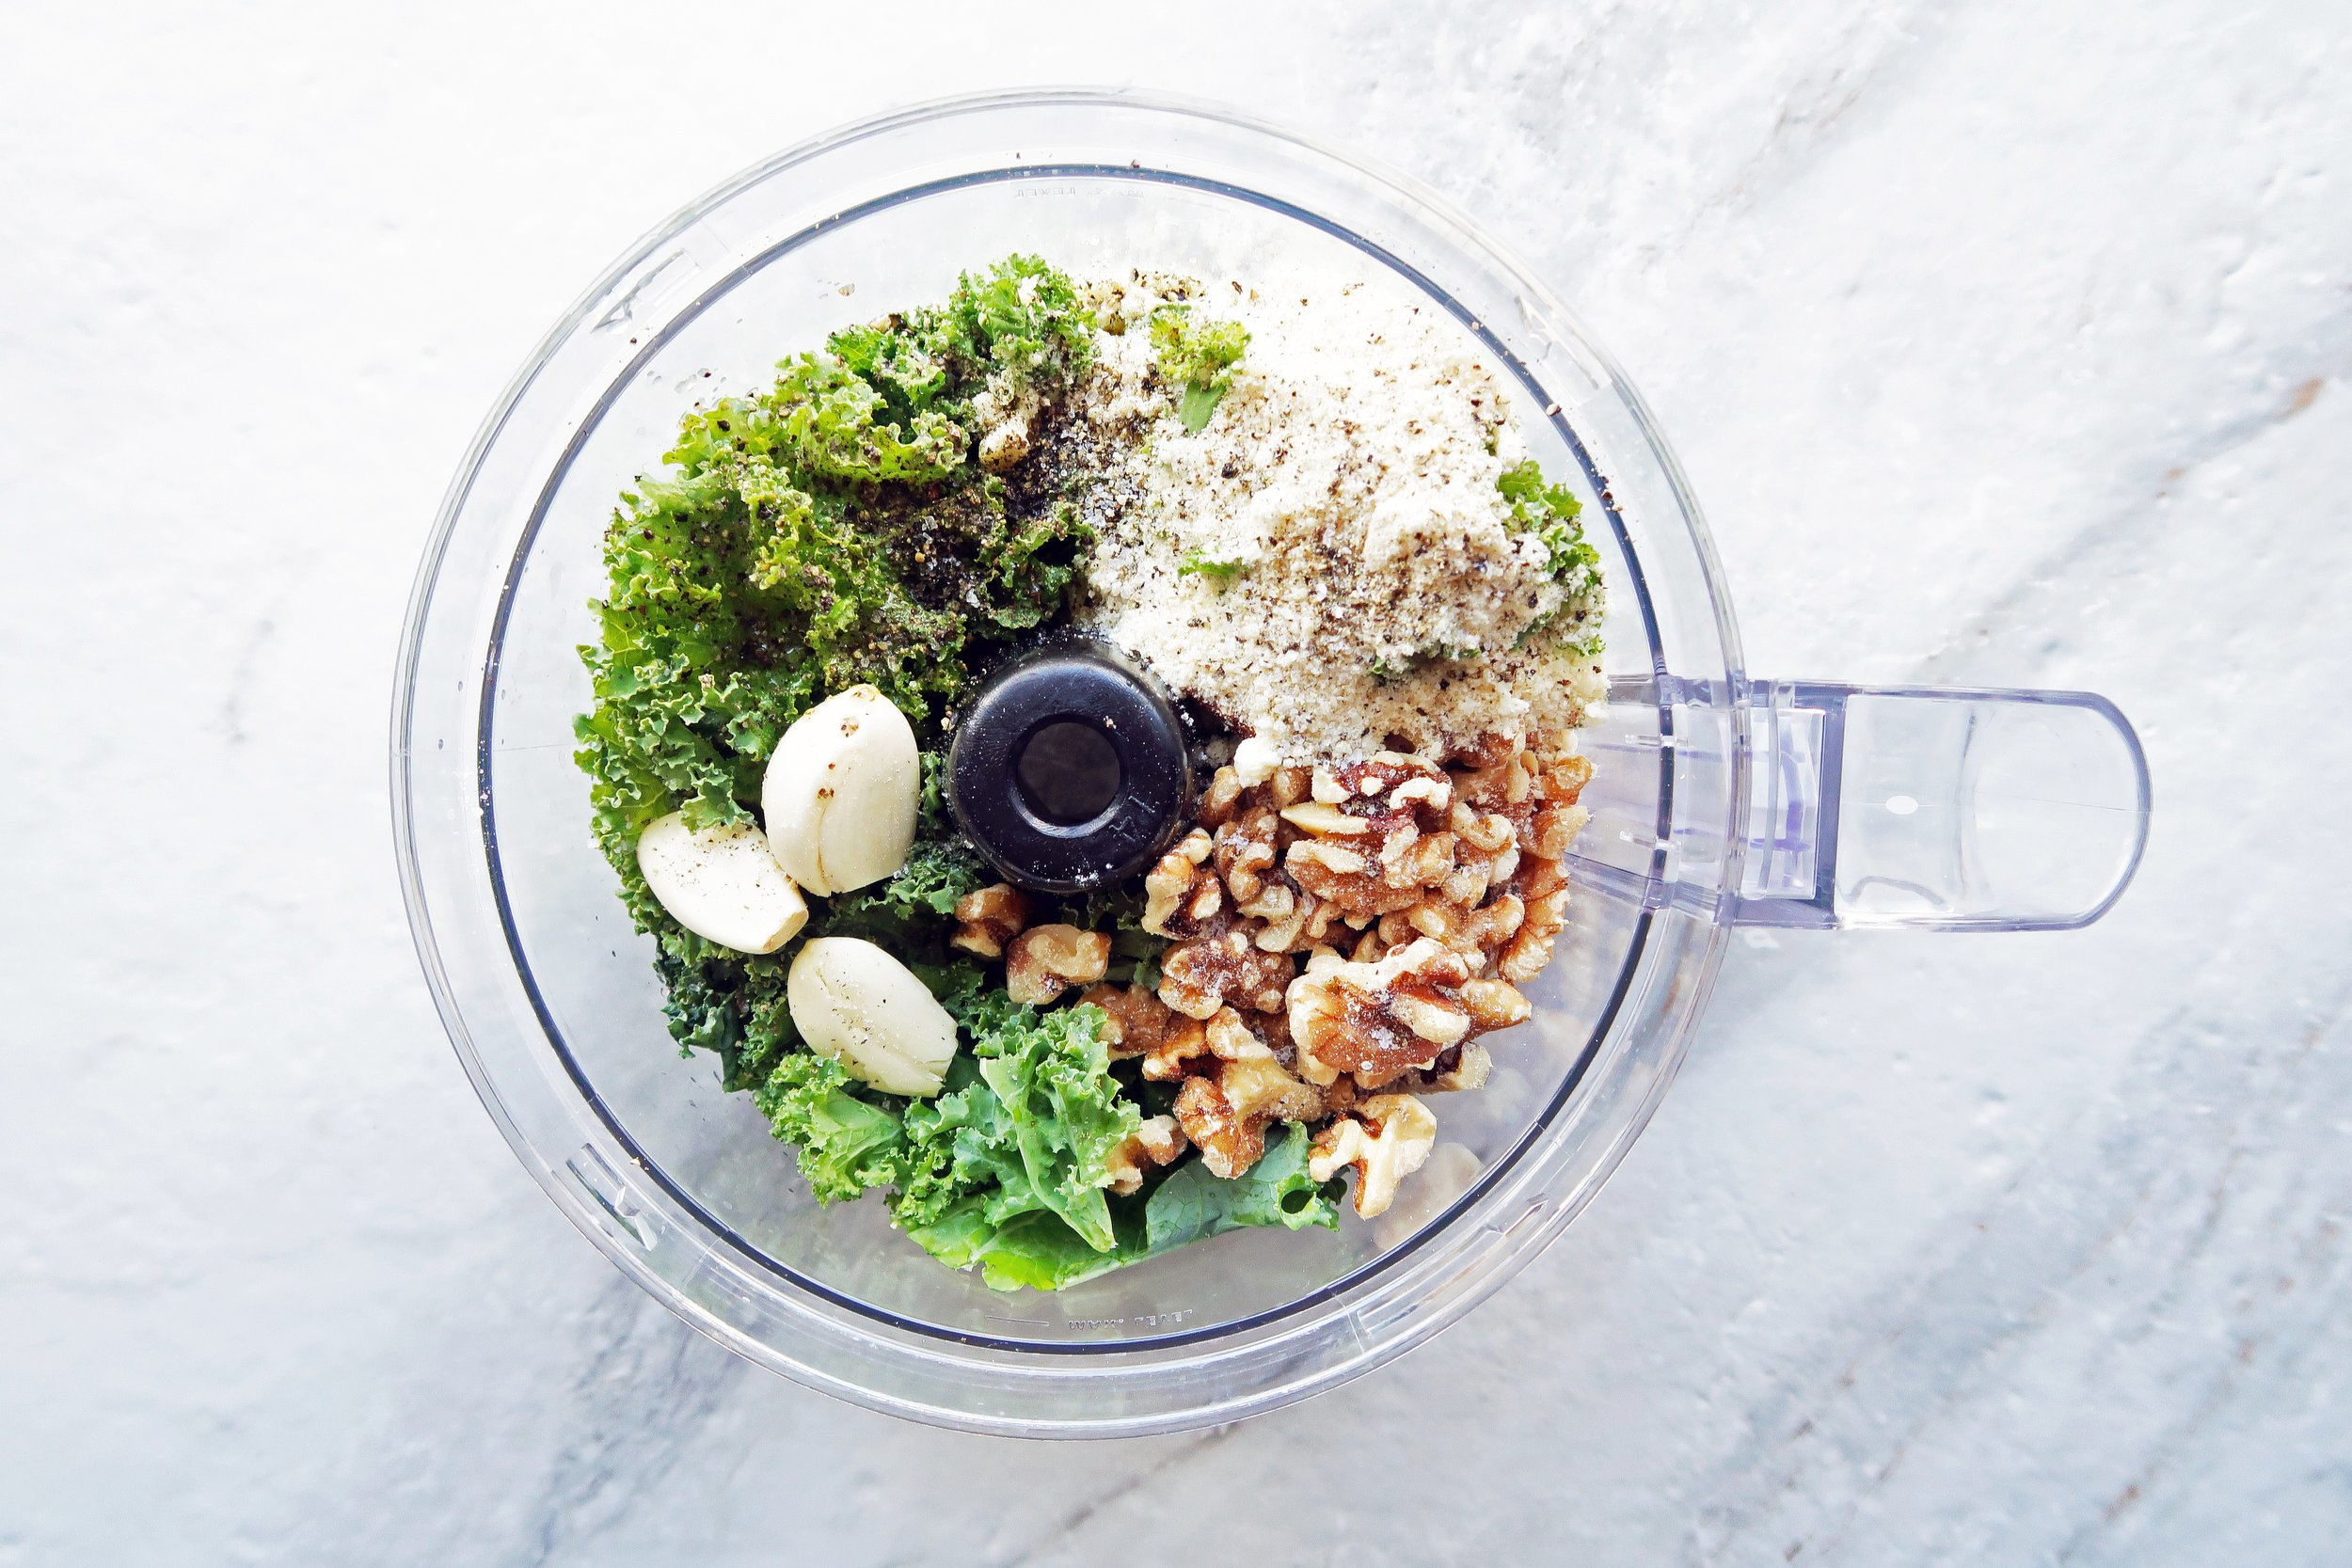 Kale walnut pesto ingredients in a food processor.